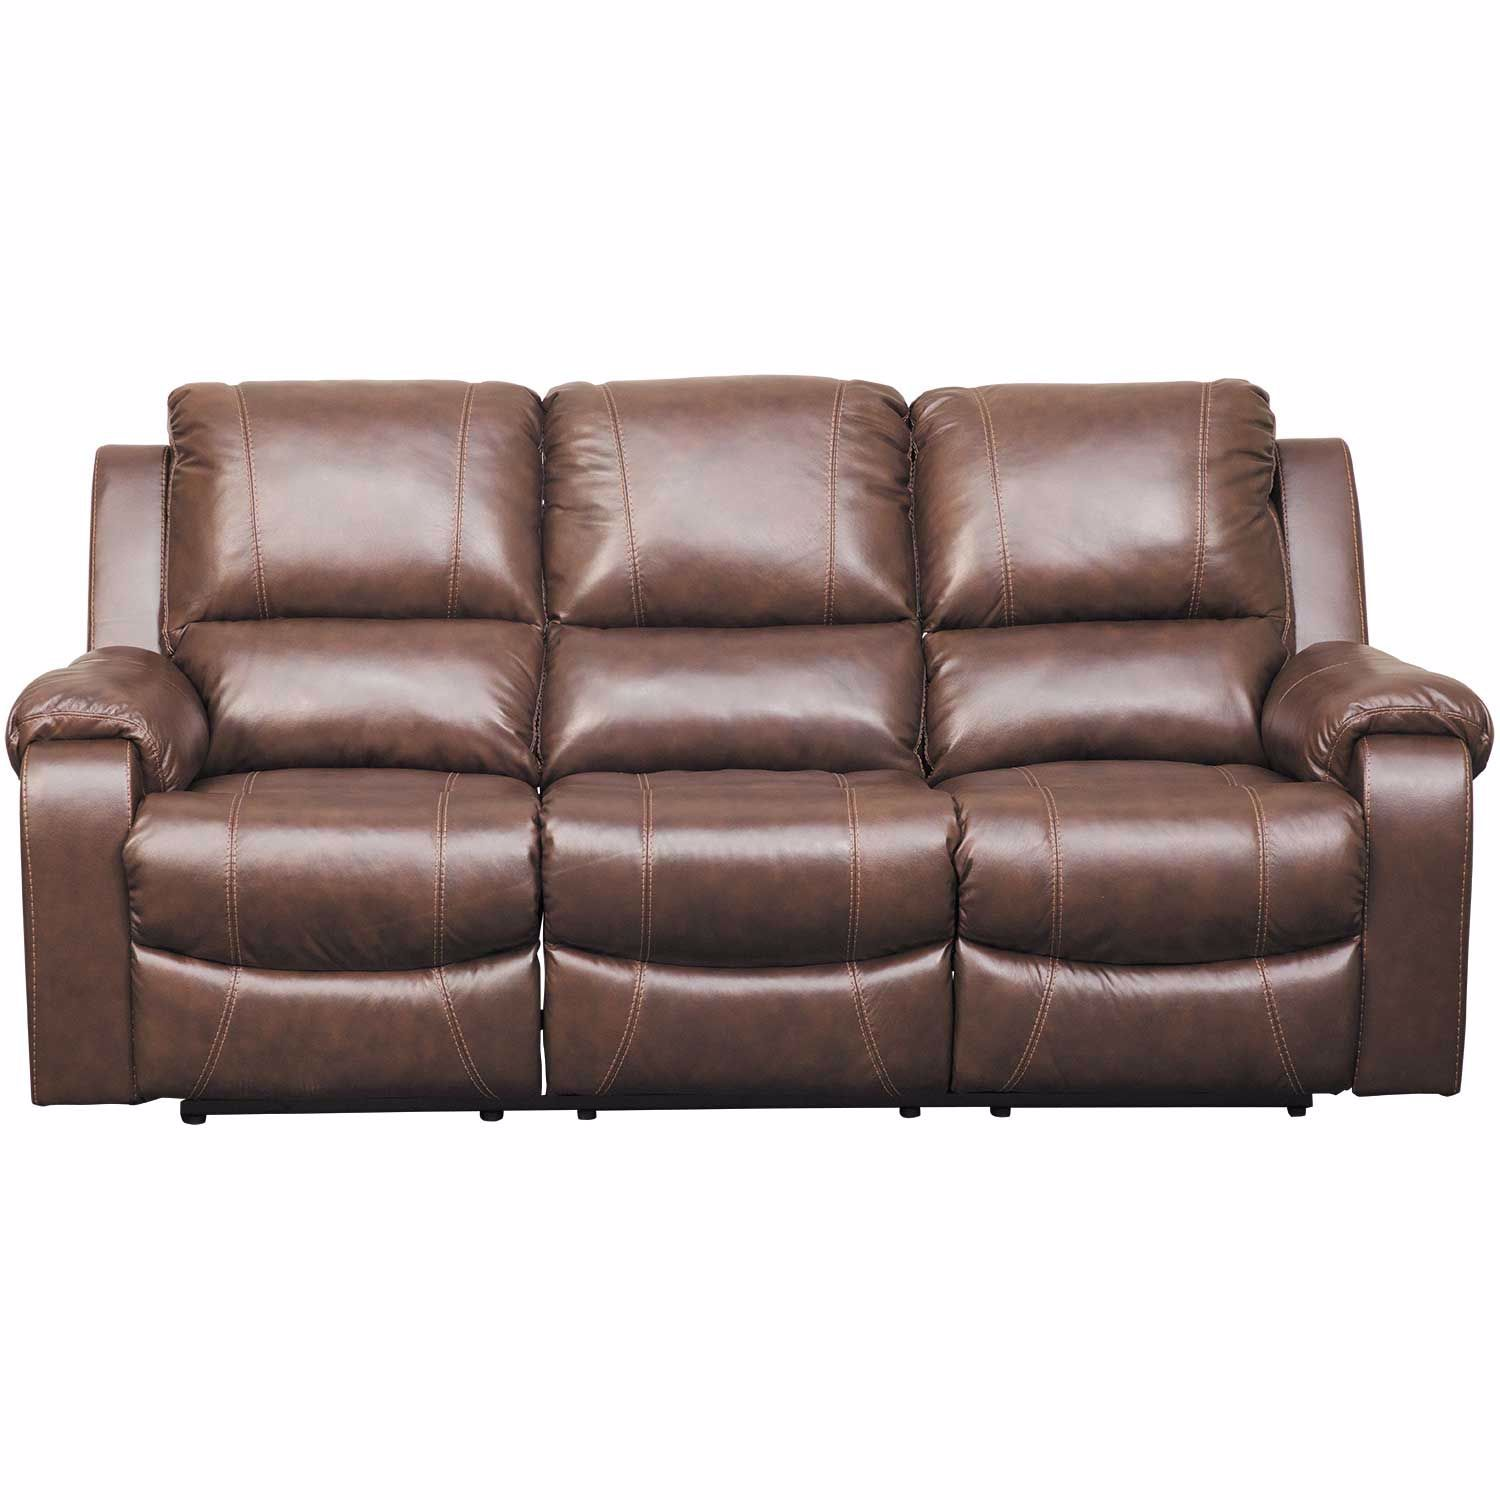 Rackingburg Mahogany Leather Reclining Sofa